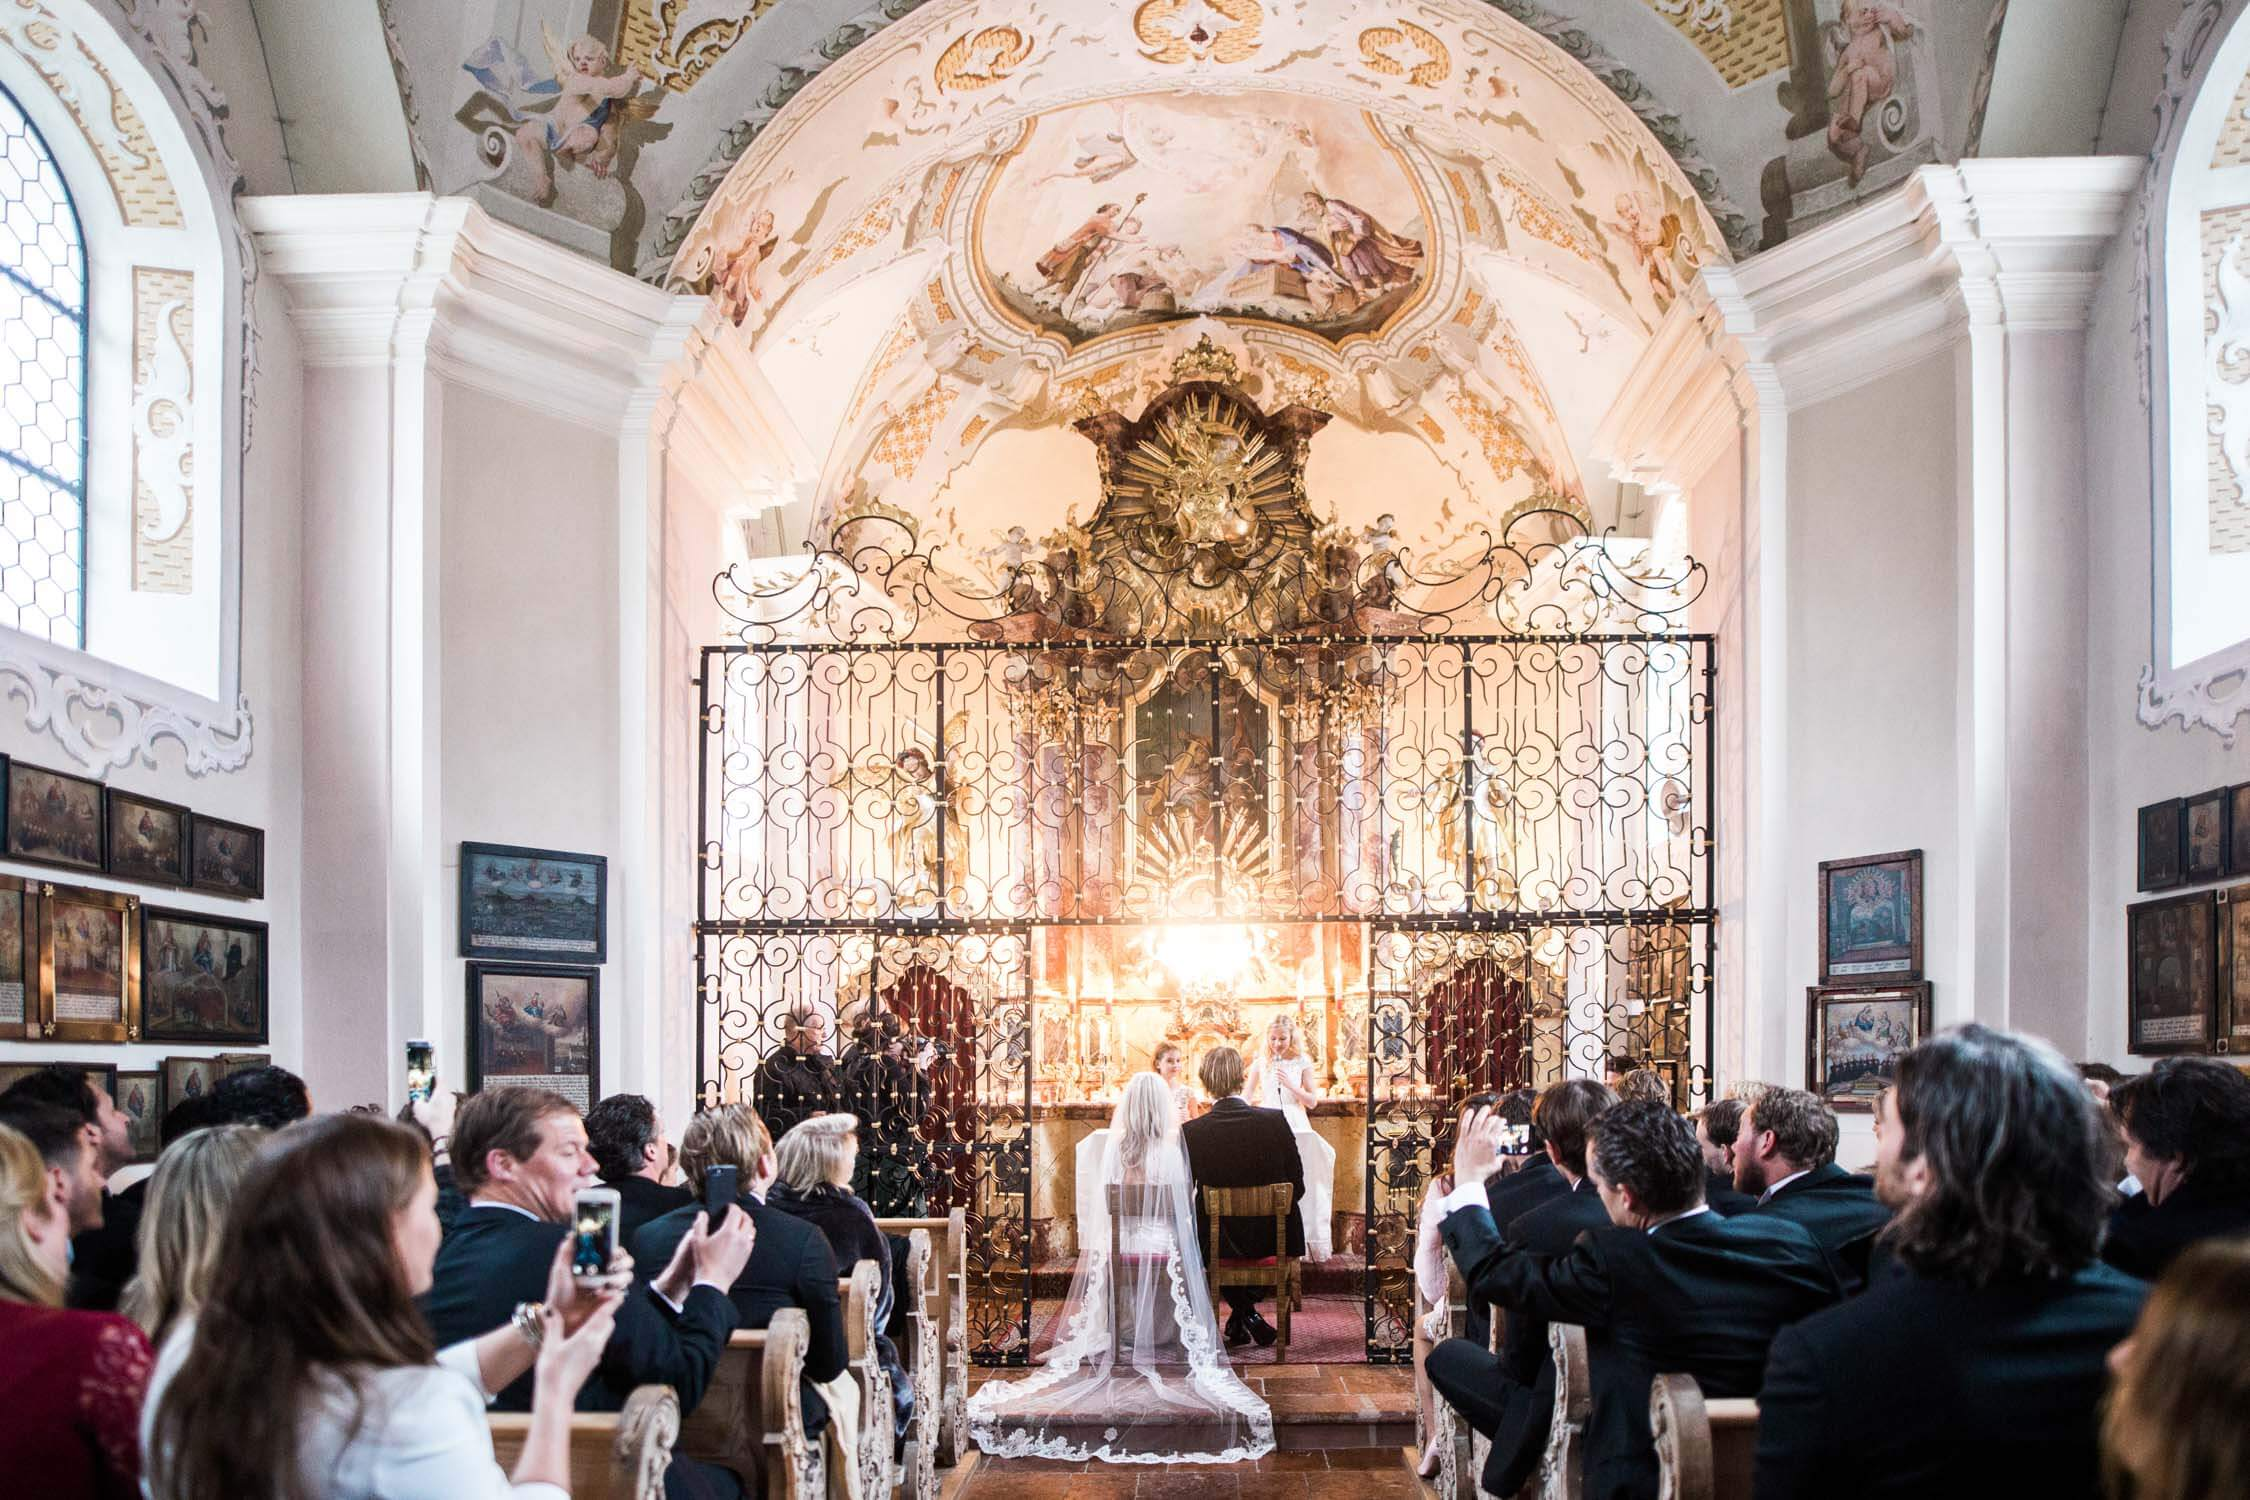 Bride and groom getting married in a chapel, captured by an English speaking photographer